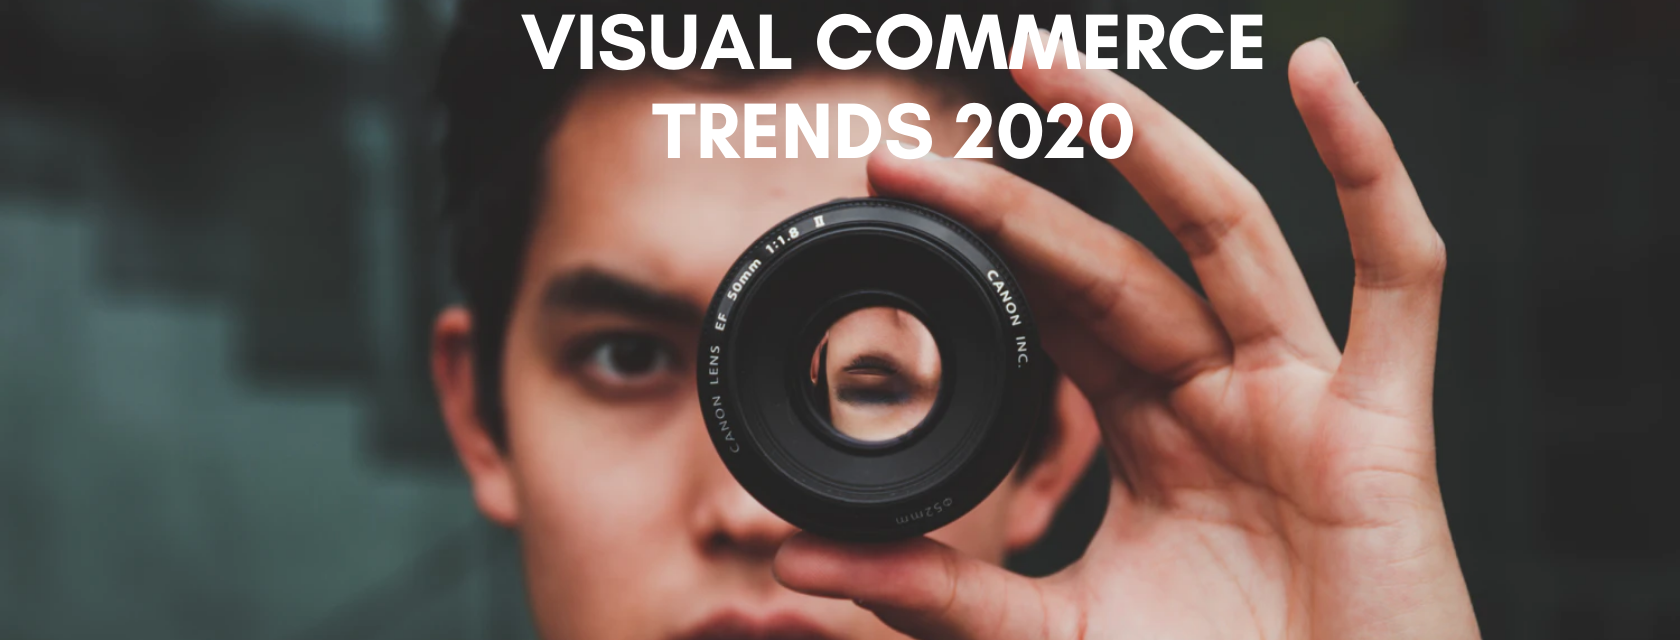 Top 5 visual commerce trends for 2020